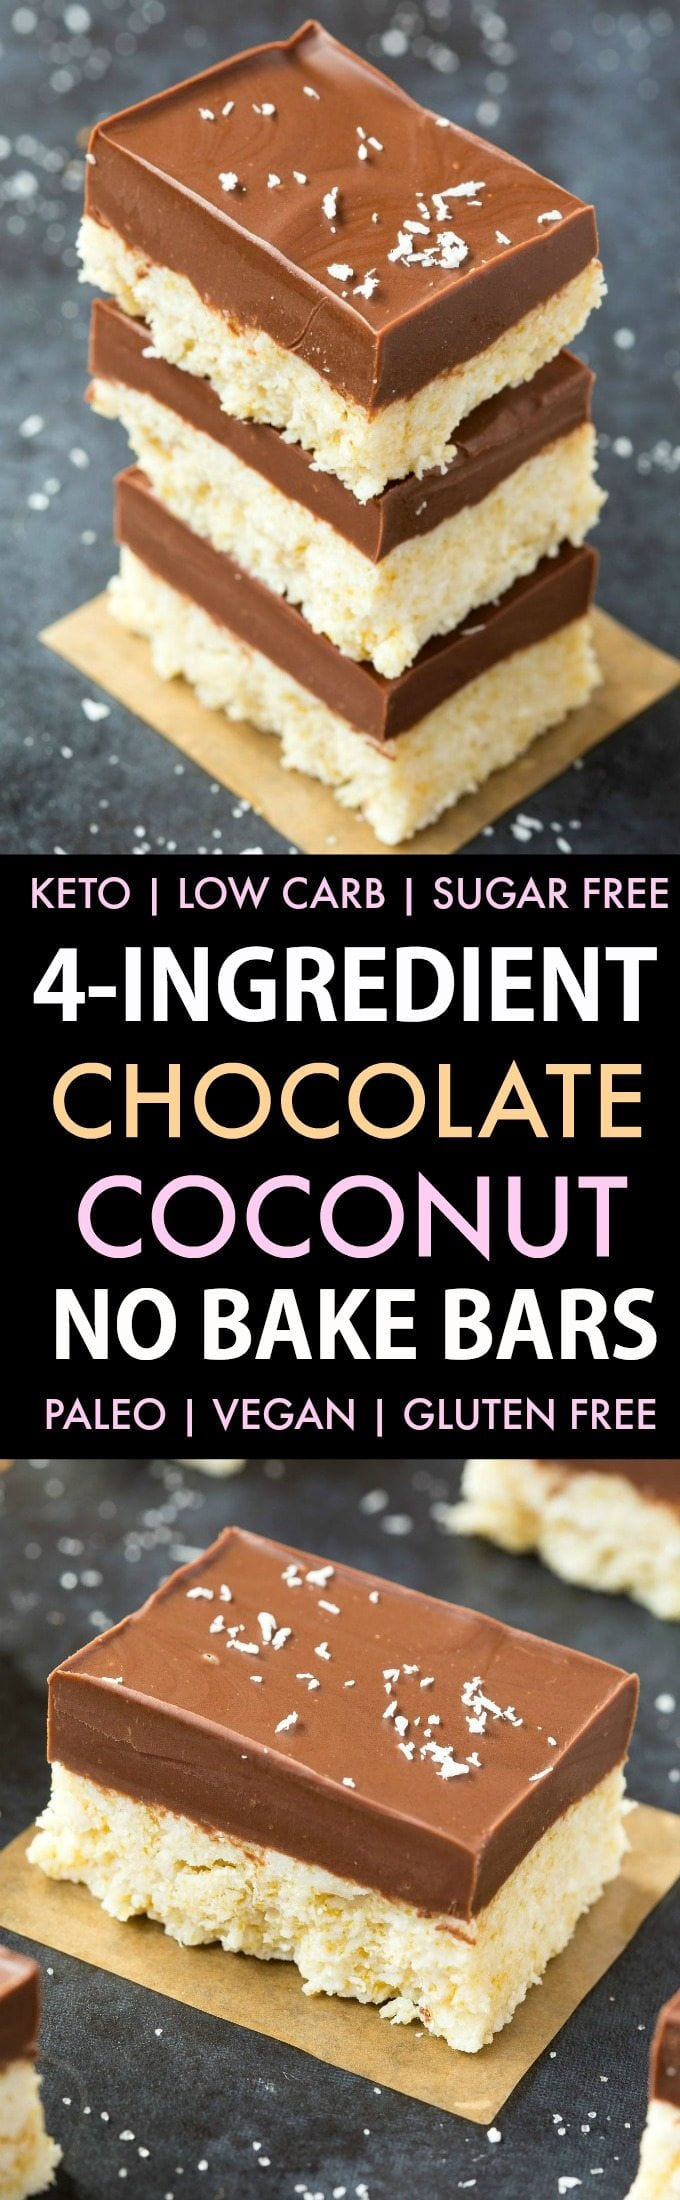 4-Ingredient No Bake Chocolate Coconut Bars (Low Carb, Paleo, Vegan, Keto, Sugar Free, Gluten Free)- Easy, healthy and seriously addictive  chocolate coconut candy bars using just 4 ingredients and needing 5 minutes! They taste like a bounty mound bar! #keto #ketodessert #coconut #healthy  #nobake | Recipe on thebigmansworld.com